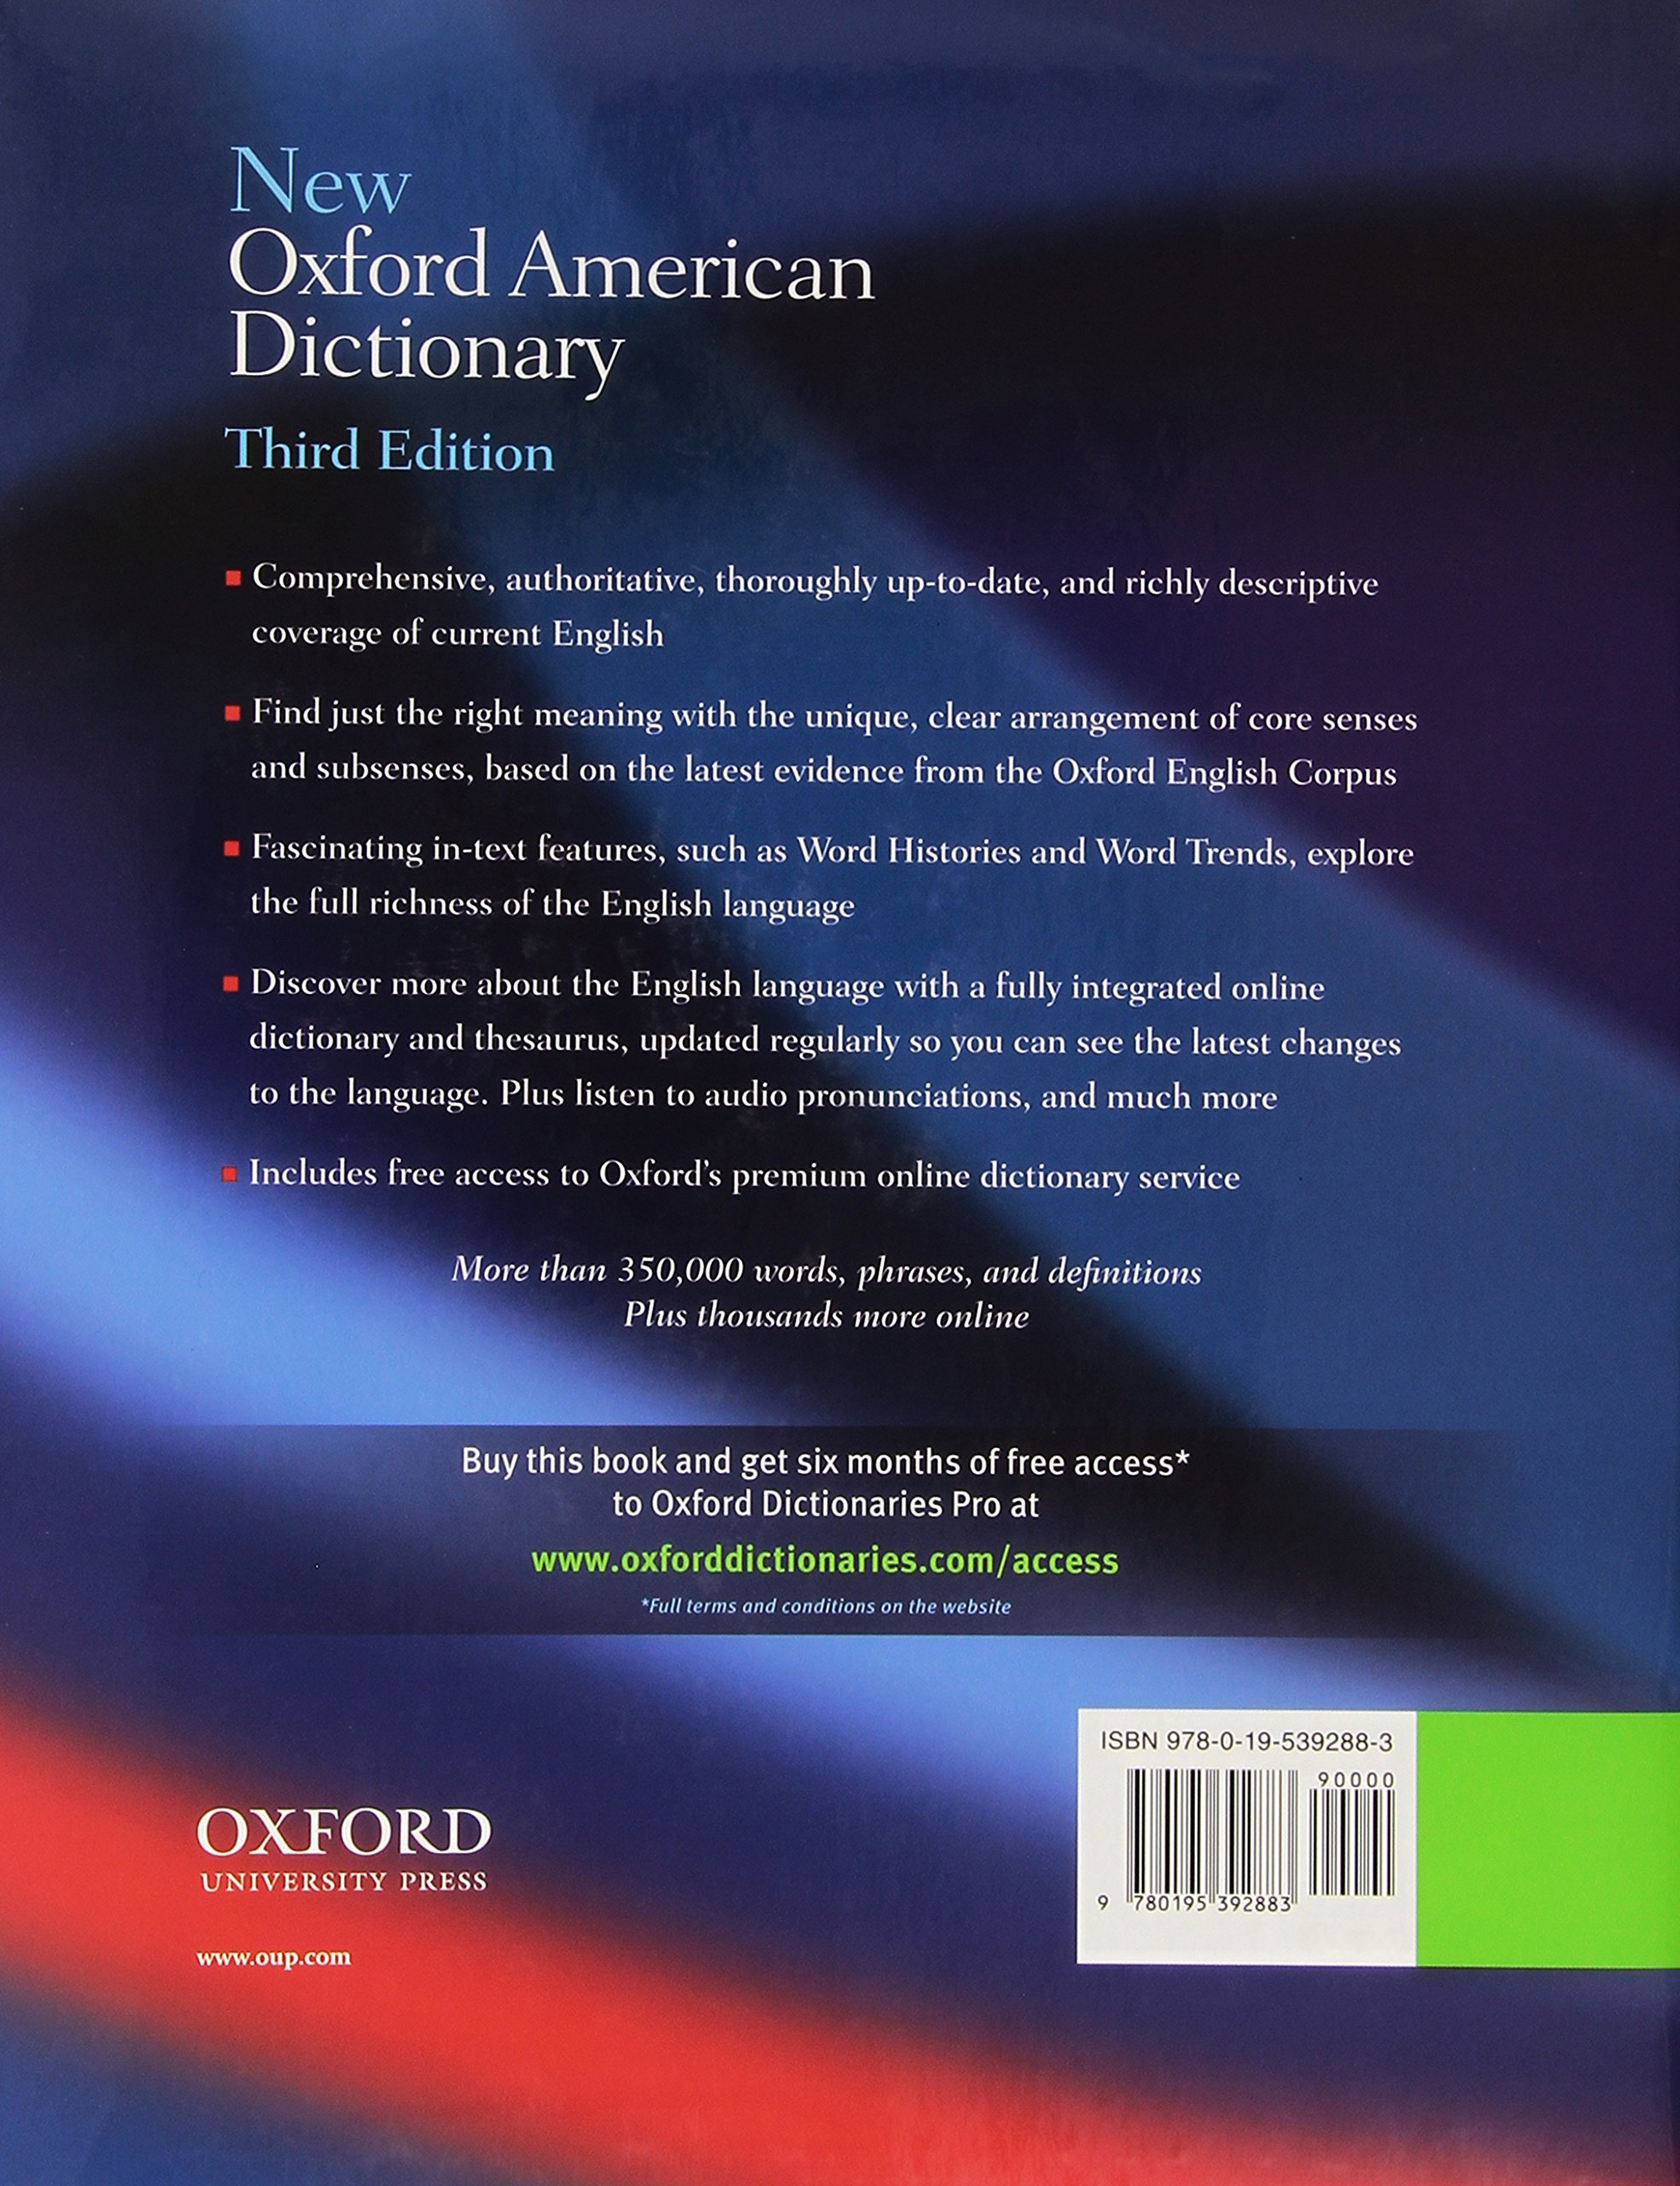 Buy New Oxford American Dictionary, Third Edition Book Online at Low Prices  in India   New Oxford American Dictionary, Third Edition Reviews & Ratings  ...